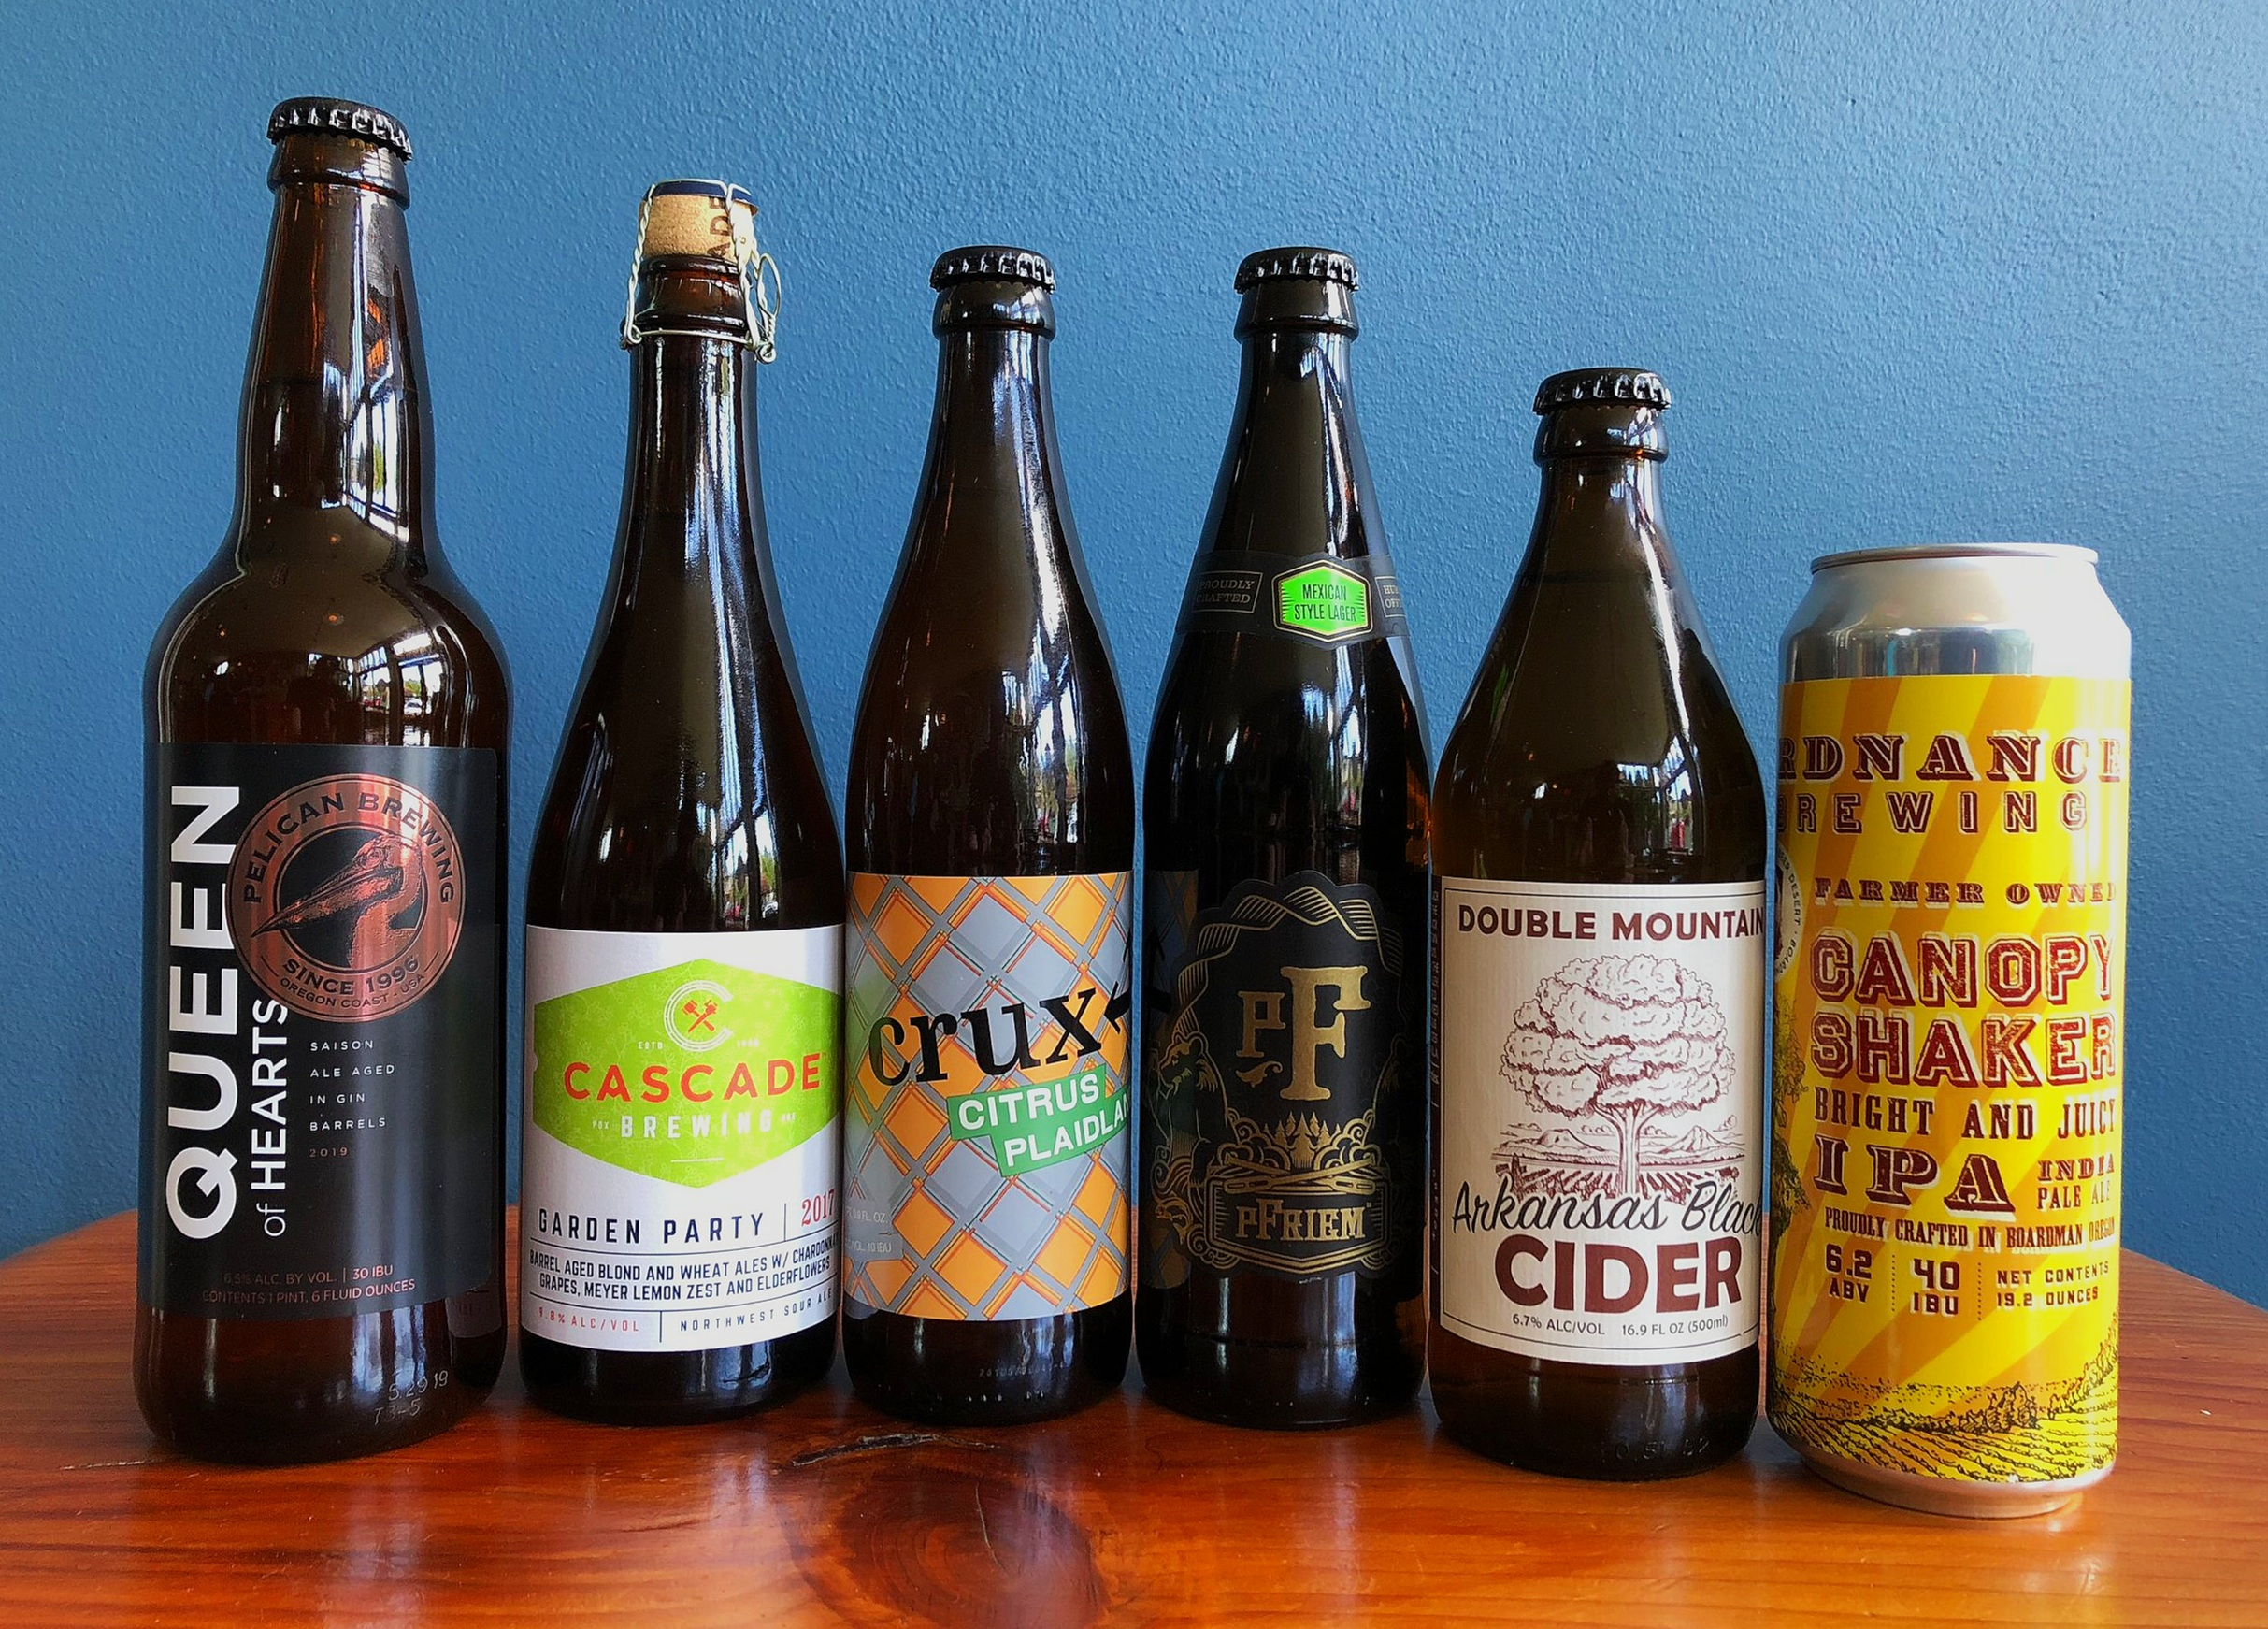 CLICK ON THESE LINKS TO LEARN MORE ABOUT THESE BEERS:    Pelican  -  Cascade  -  Crux  -  pFriem  -  Double Mountain  -  Ordnance